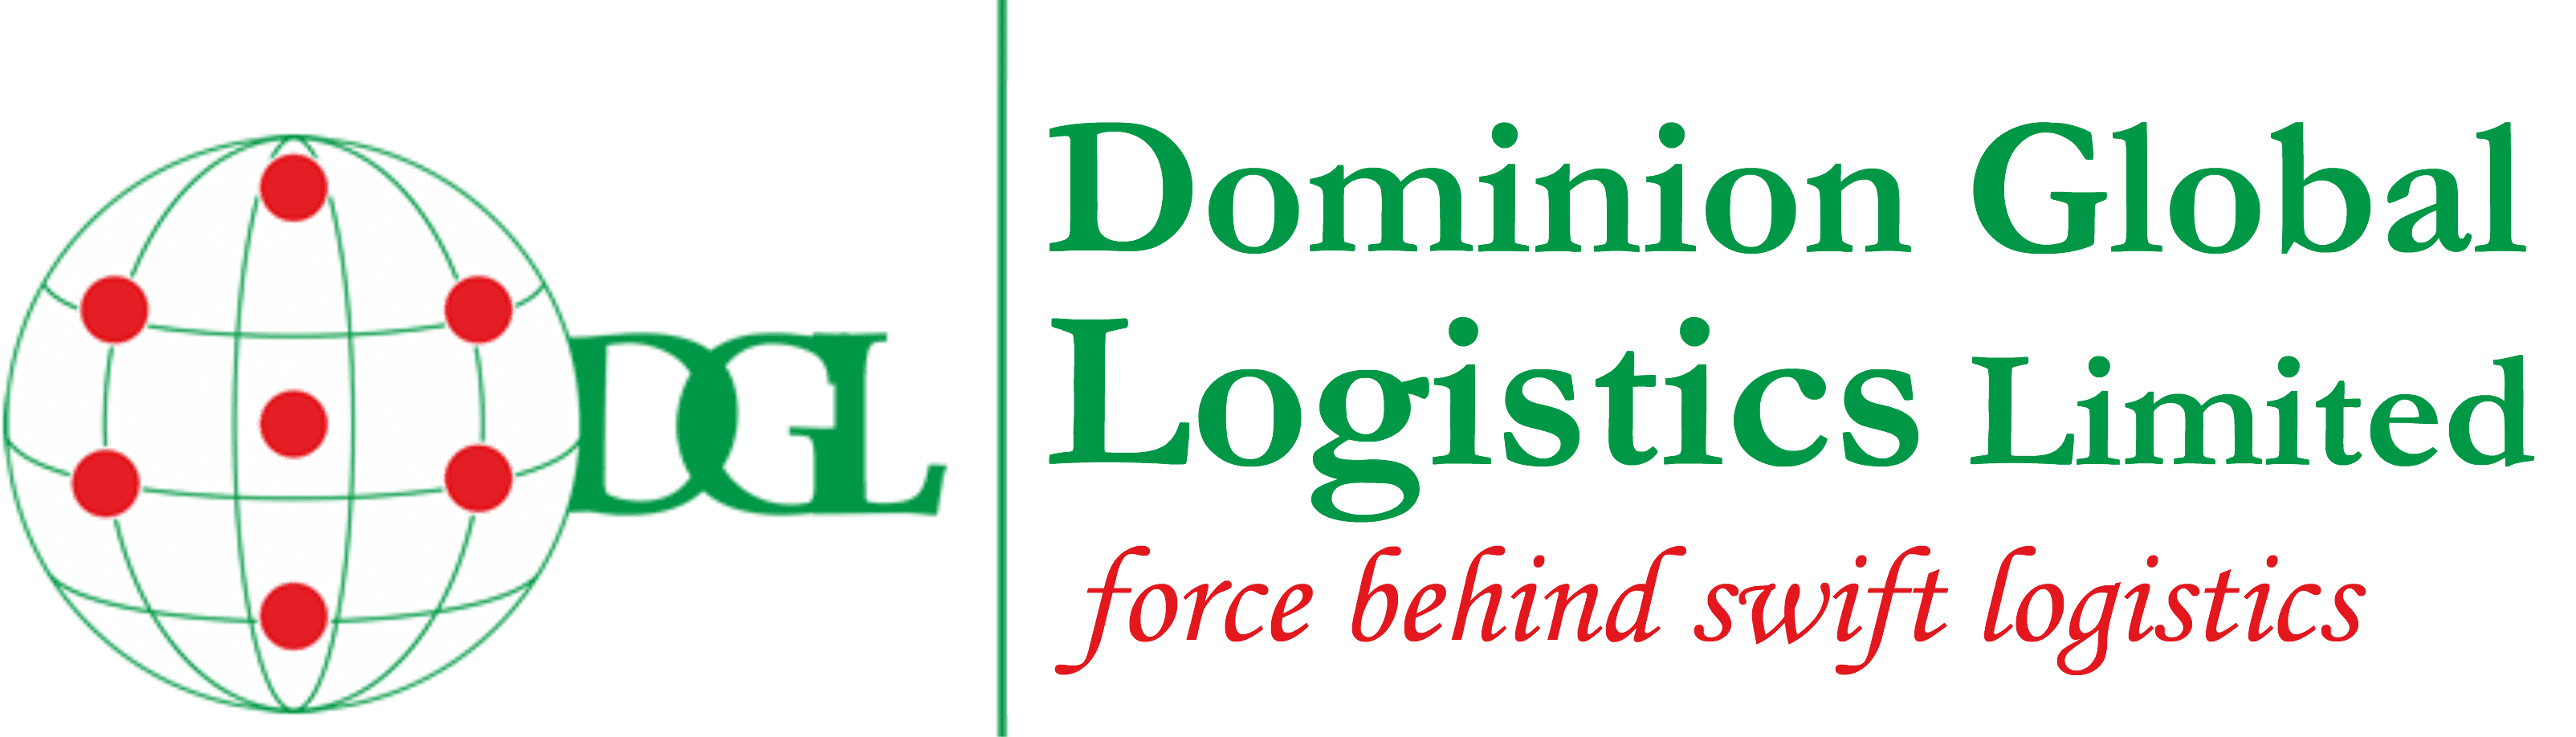 DOMINION GLOBAL LOGISTICS LIMITED